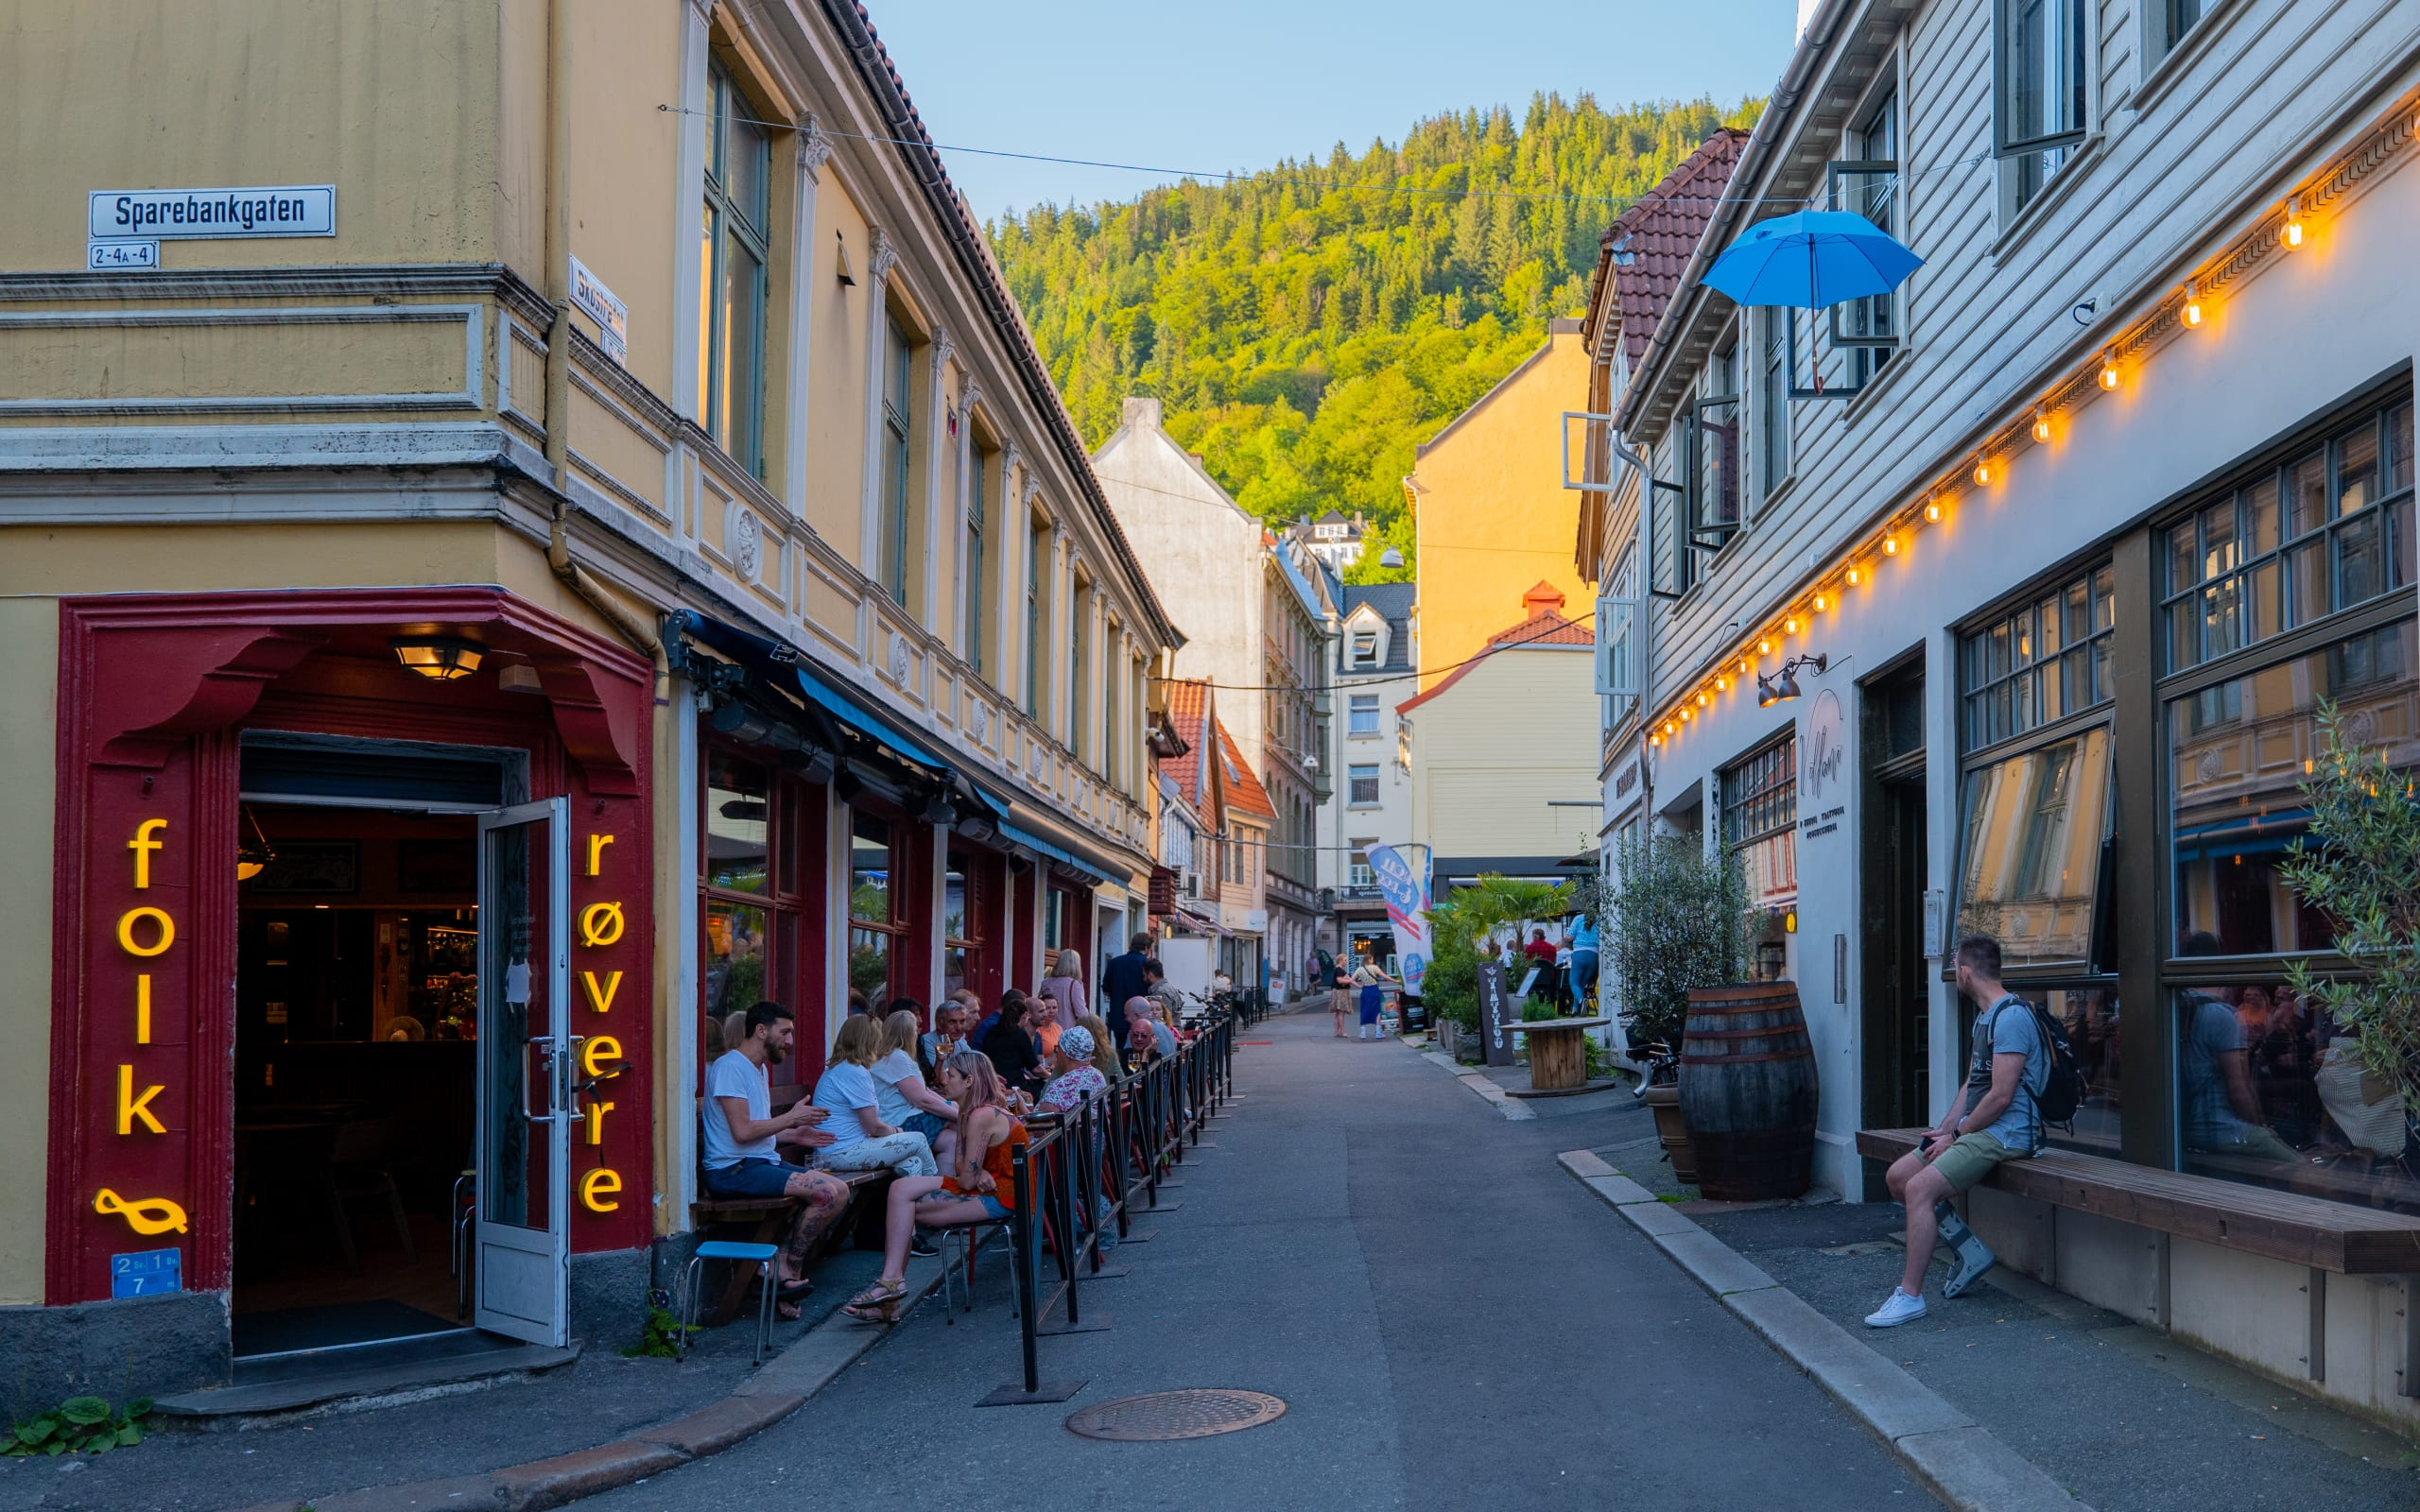 Skostredet bar street in Bergen